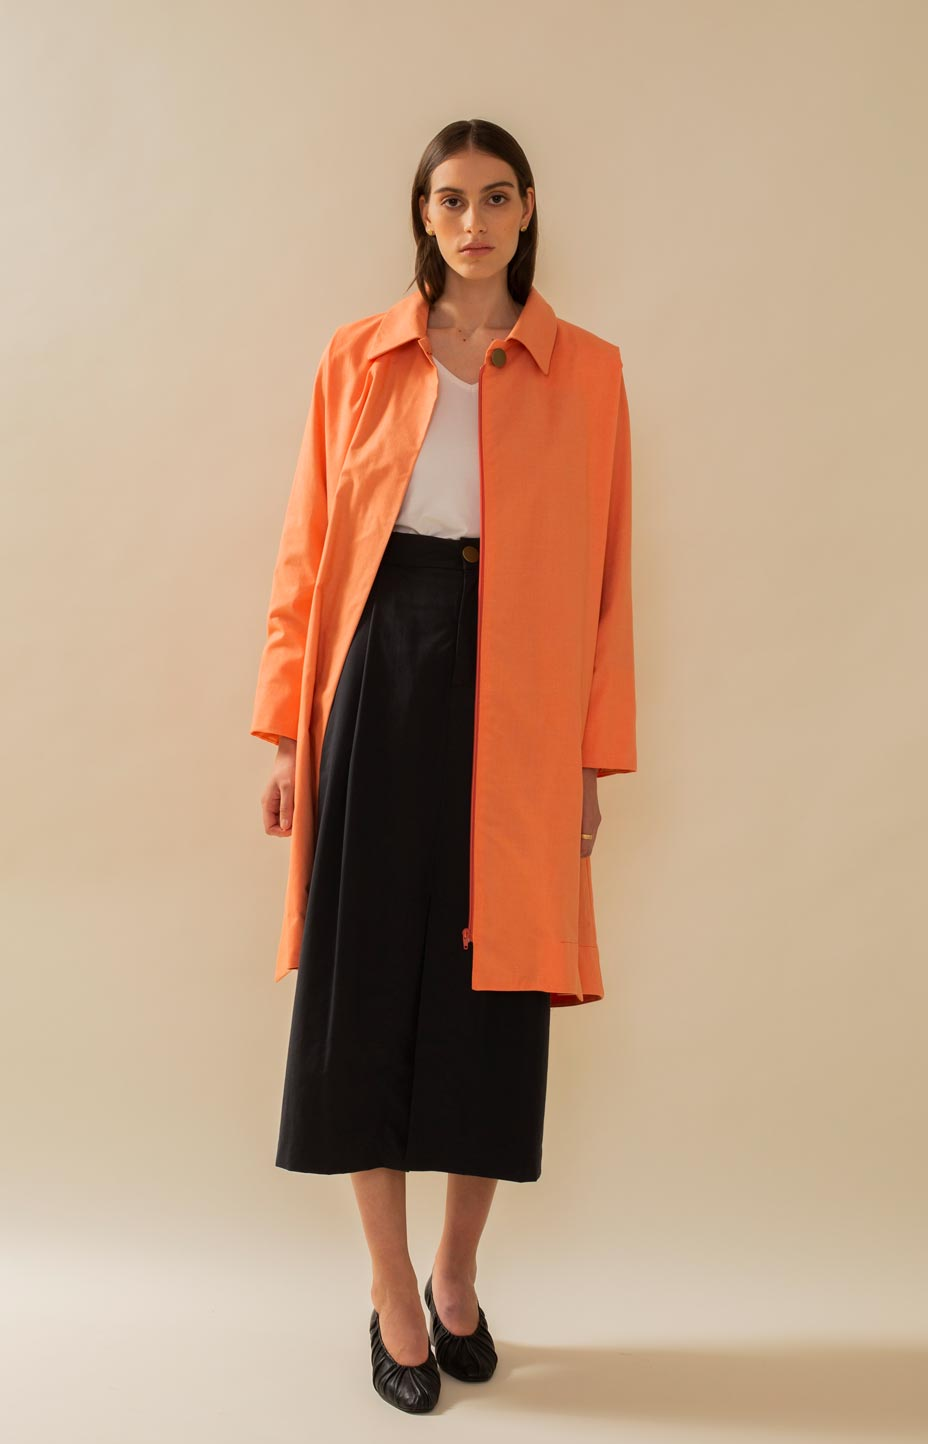 Minimalistic trench coat in fresh cantaloupe color.